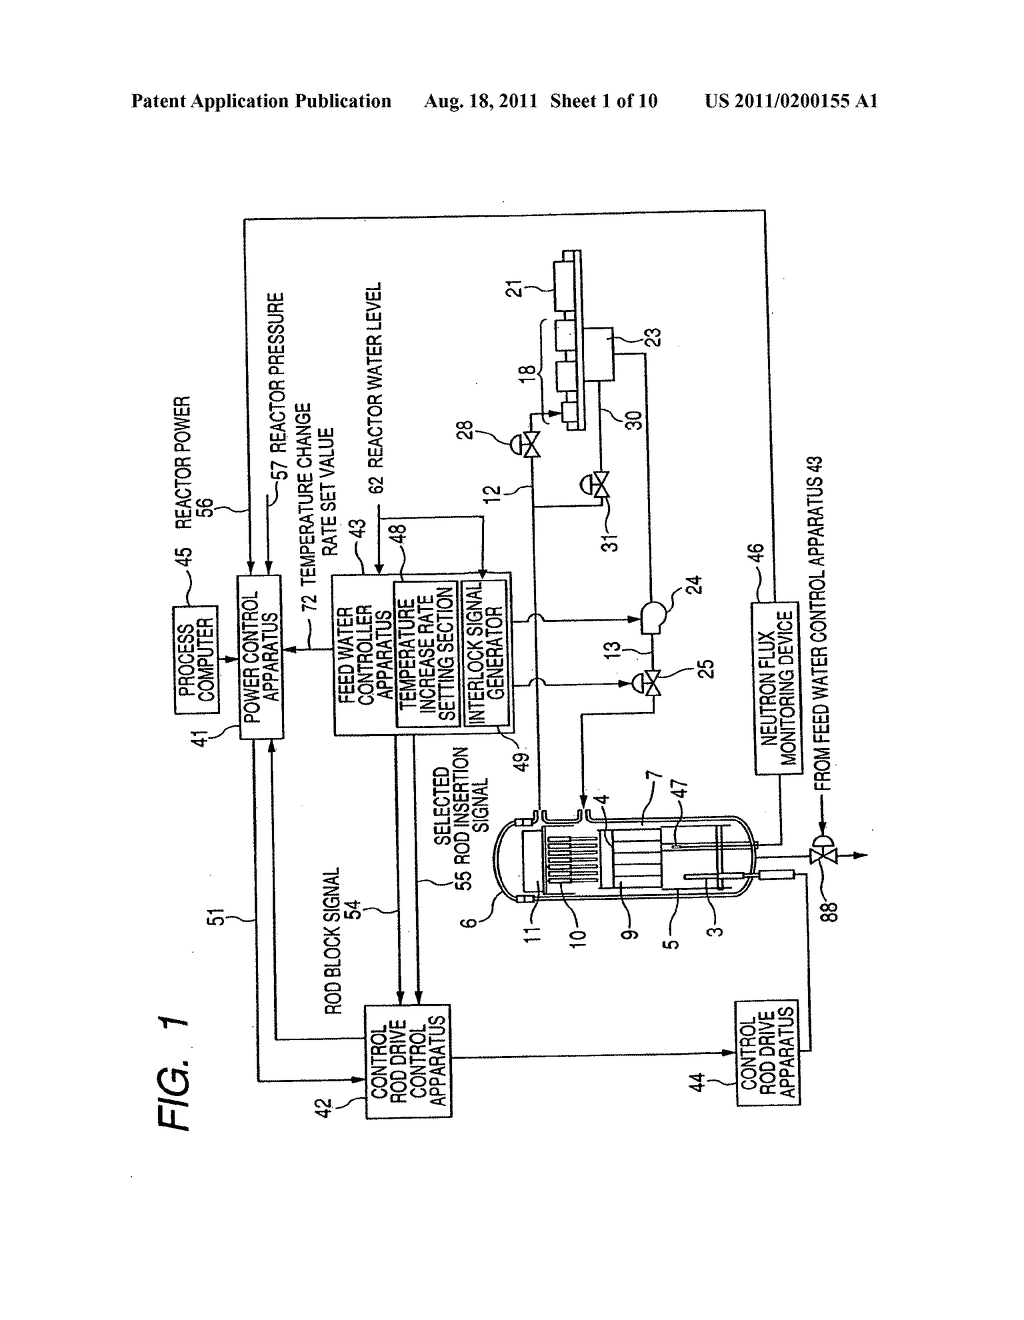 Schematic Block Diagram Of Nuclear Power Plant